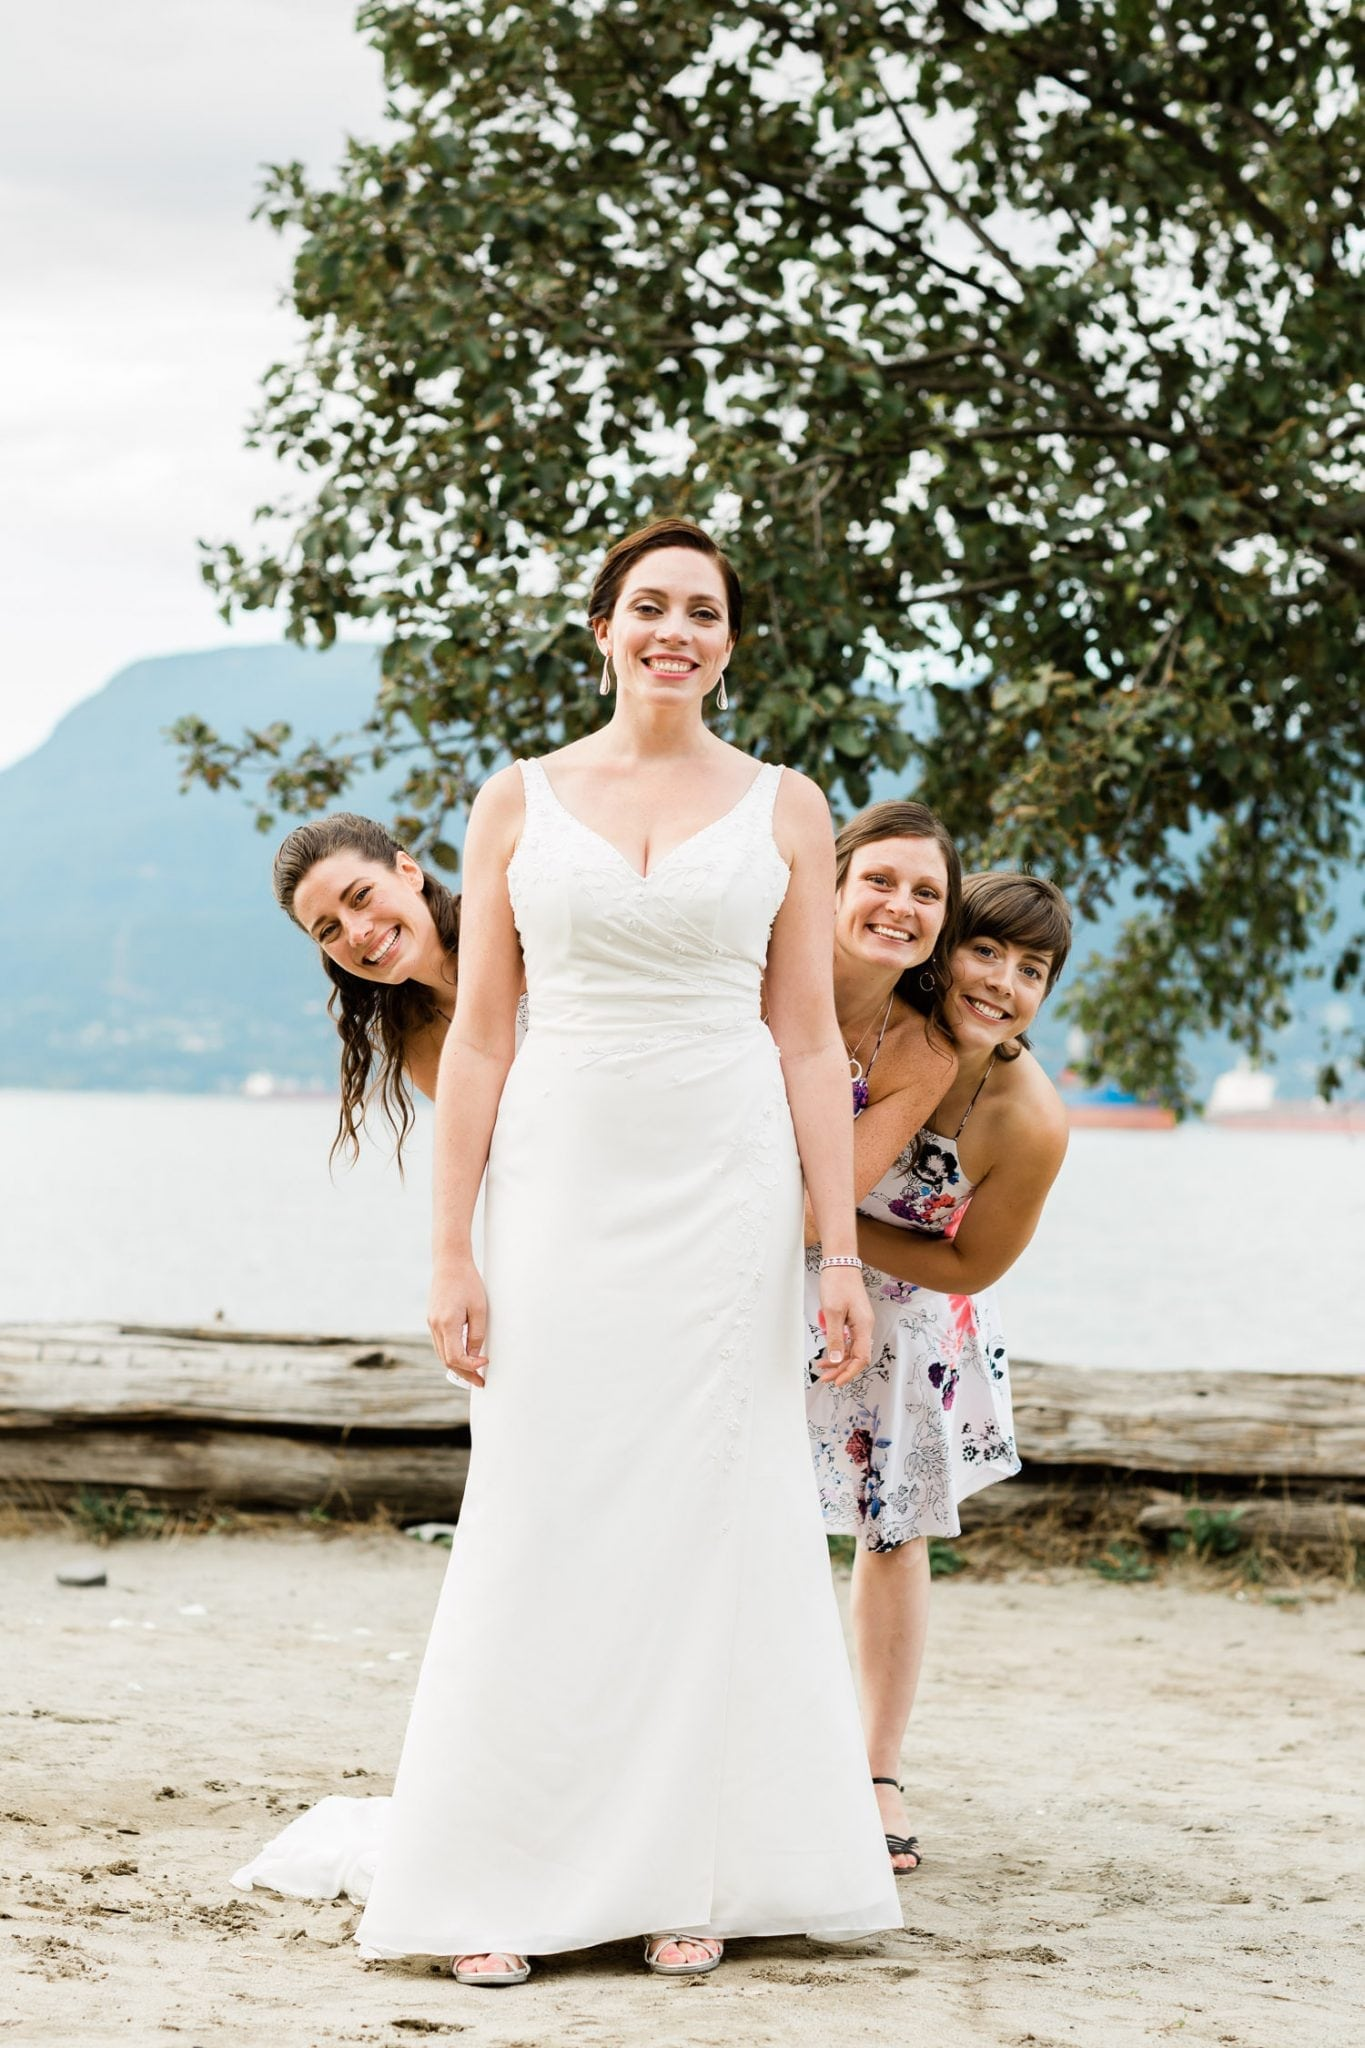 Bride and her brides mates, Wedding ceremony on Spanish banks | Vancouver wedding photographer